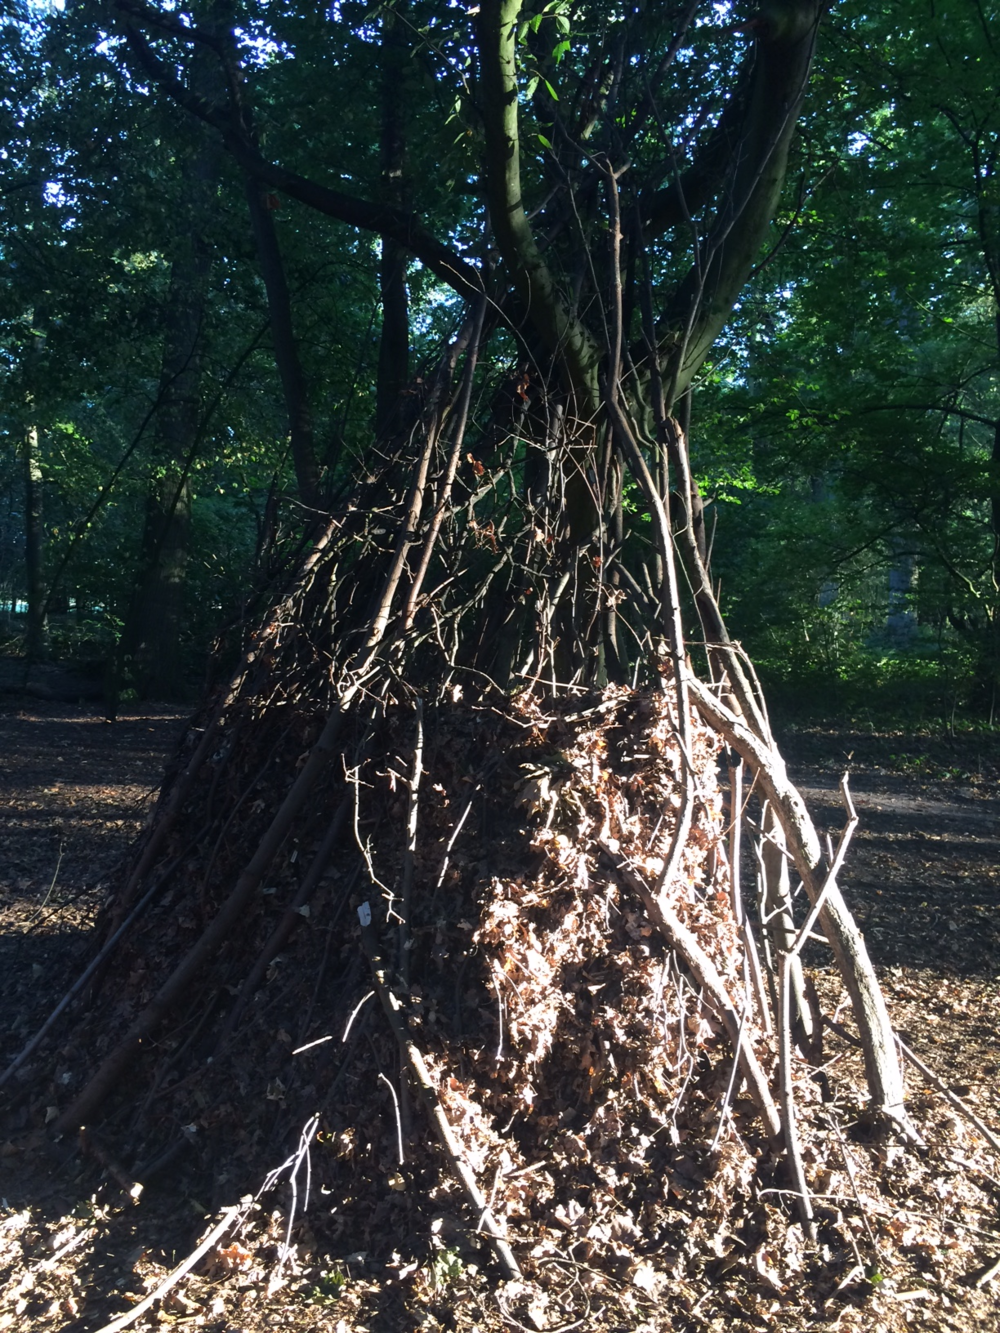 The Blair Witch-like structure I happened upon in the woods.